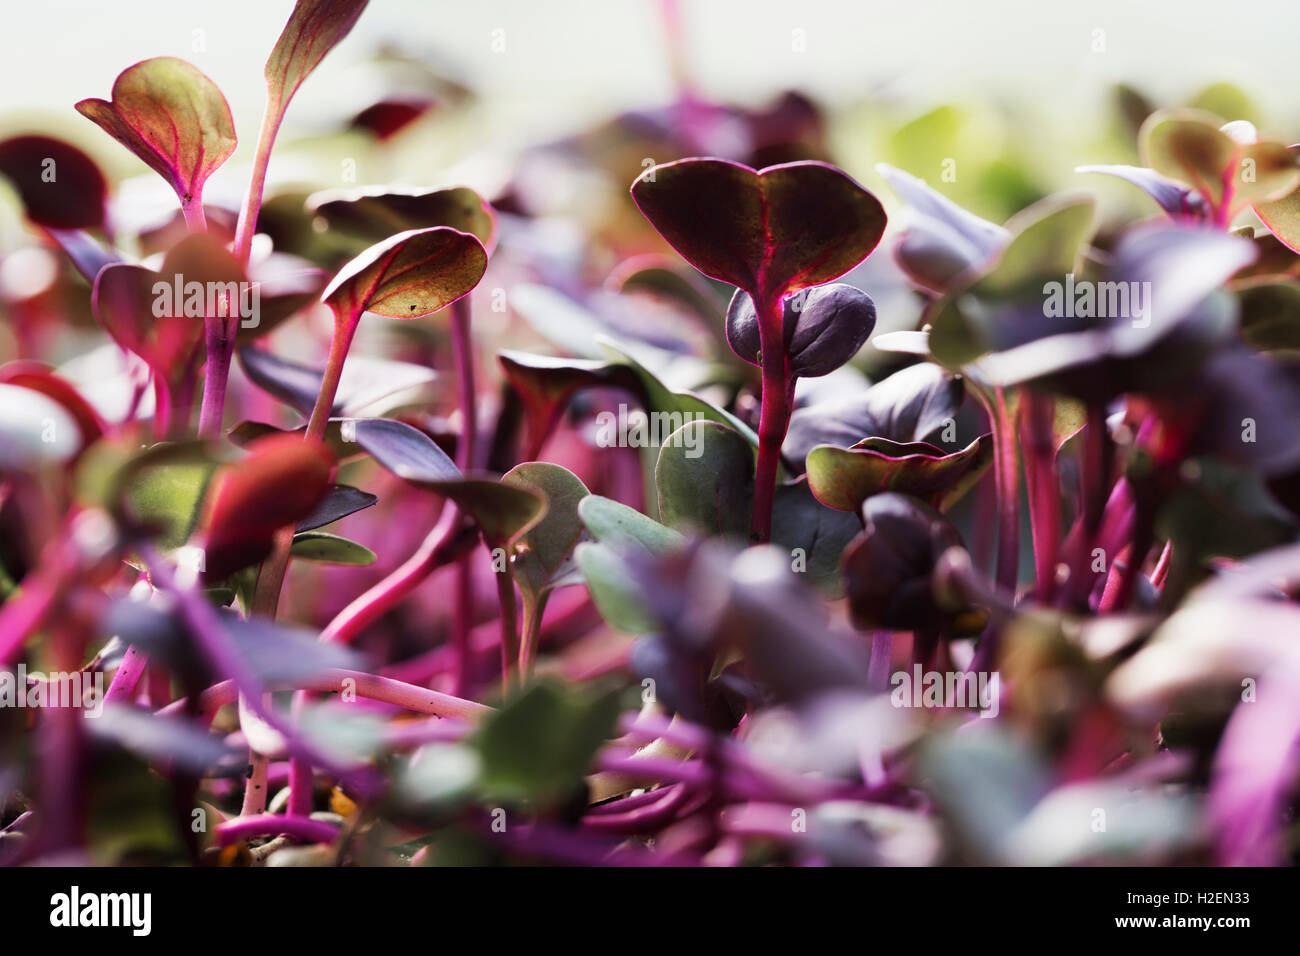 Close up of red salad leaves and micro leaves growing. - Stock Image